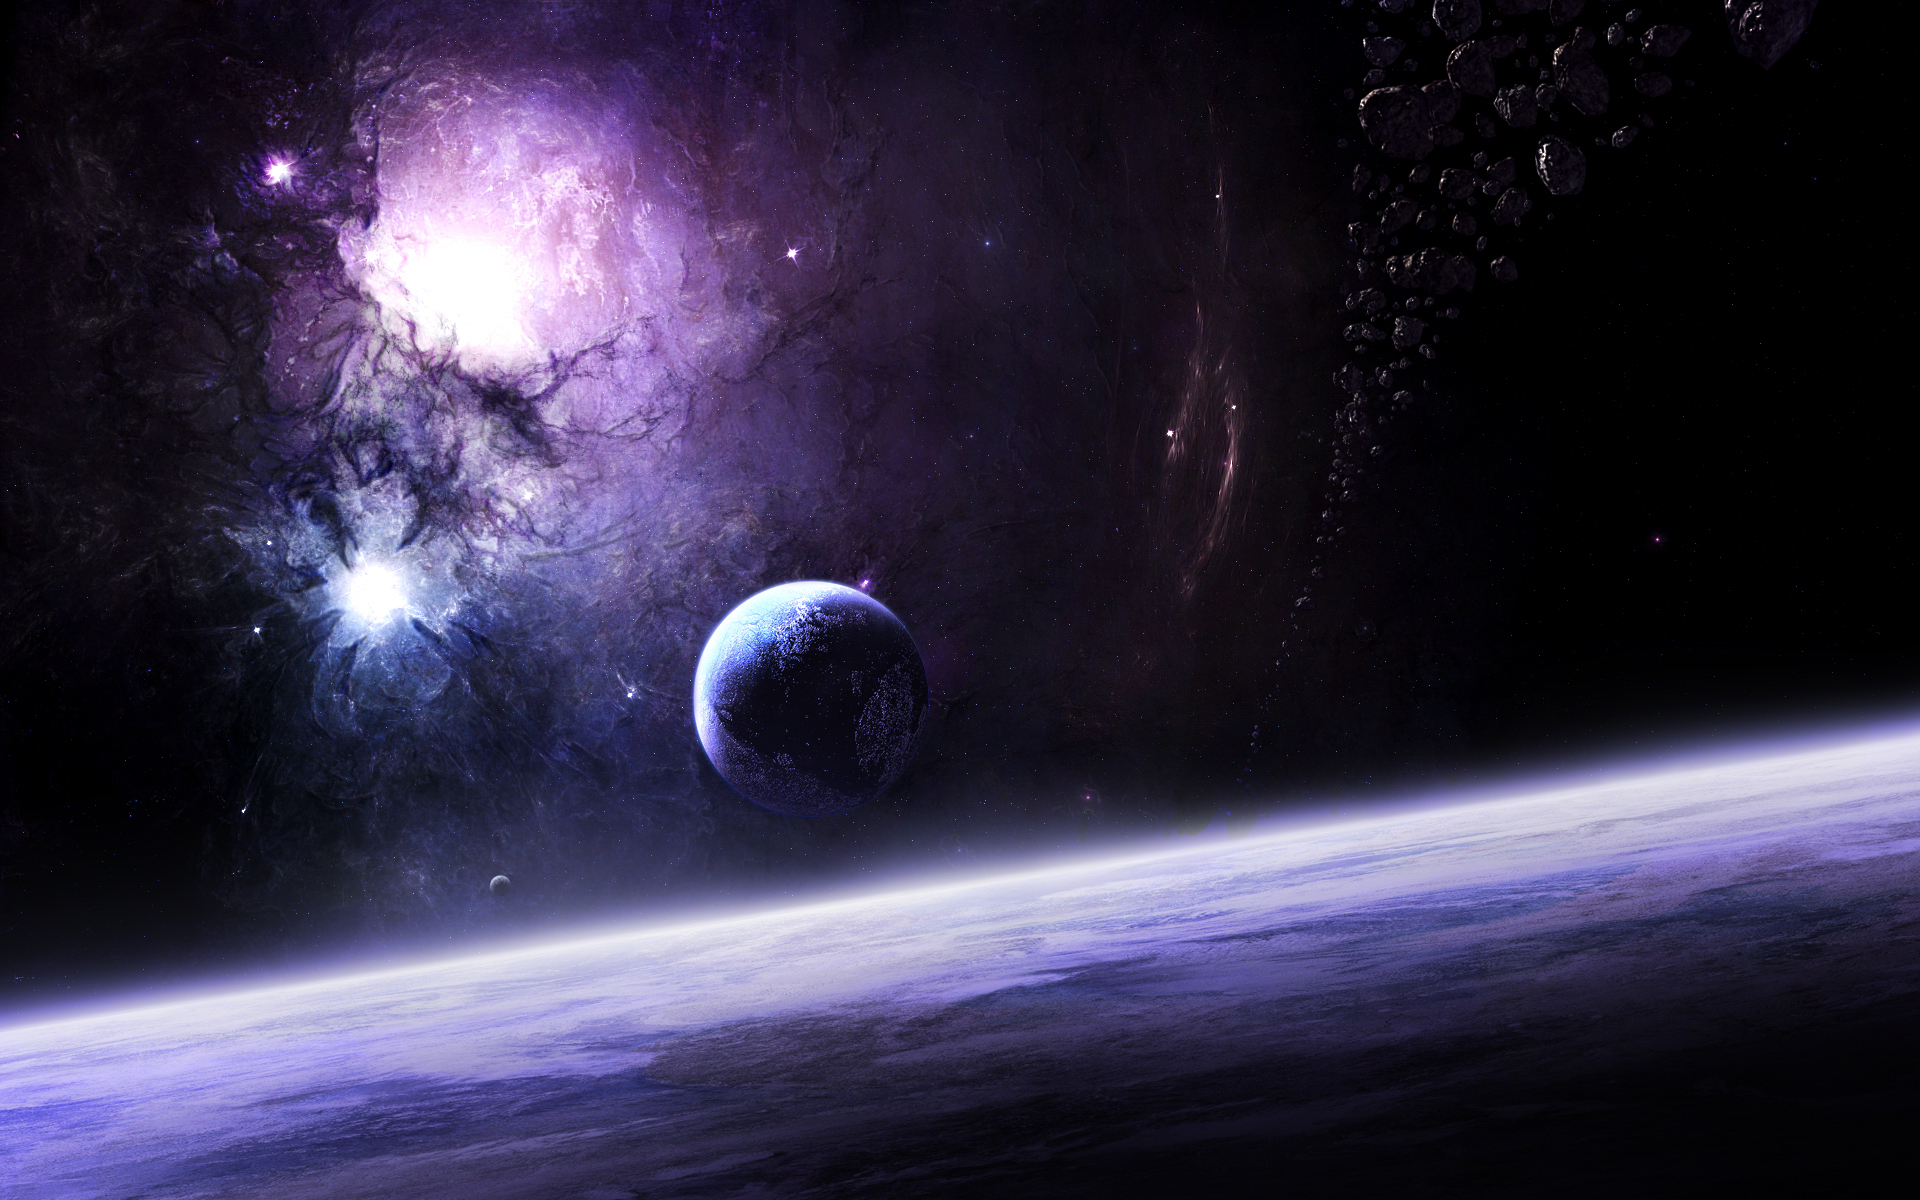 Space and Planets Wallpaper